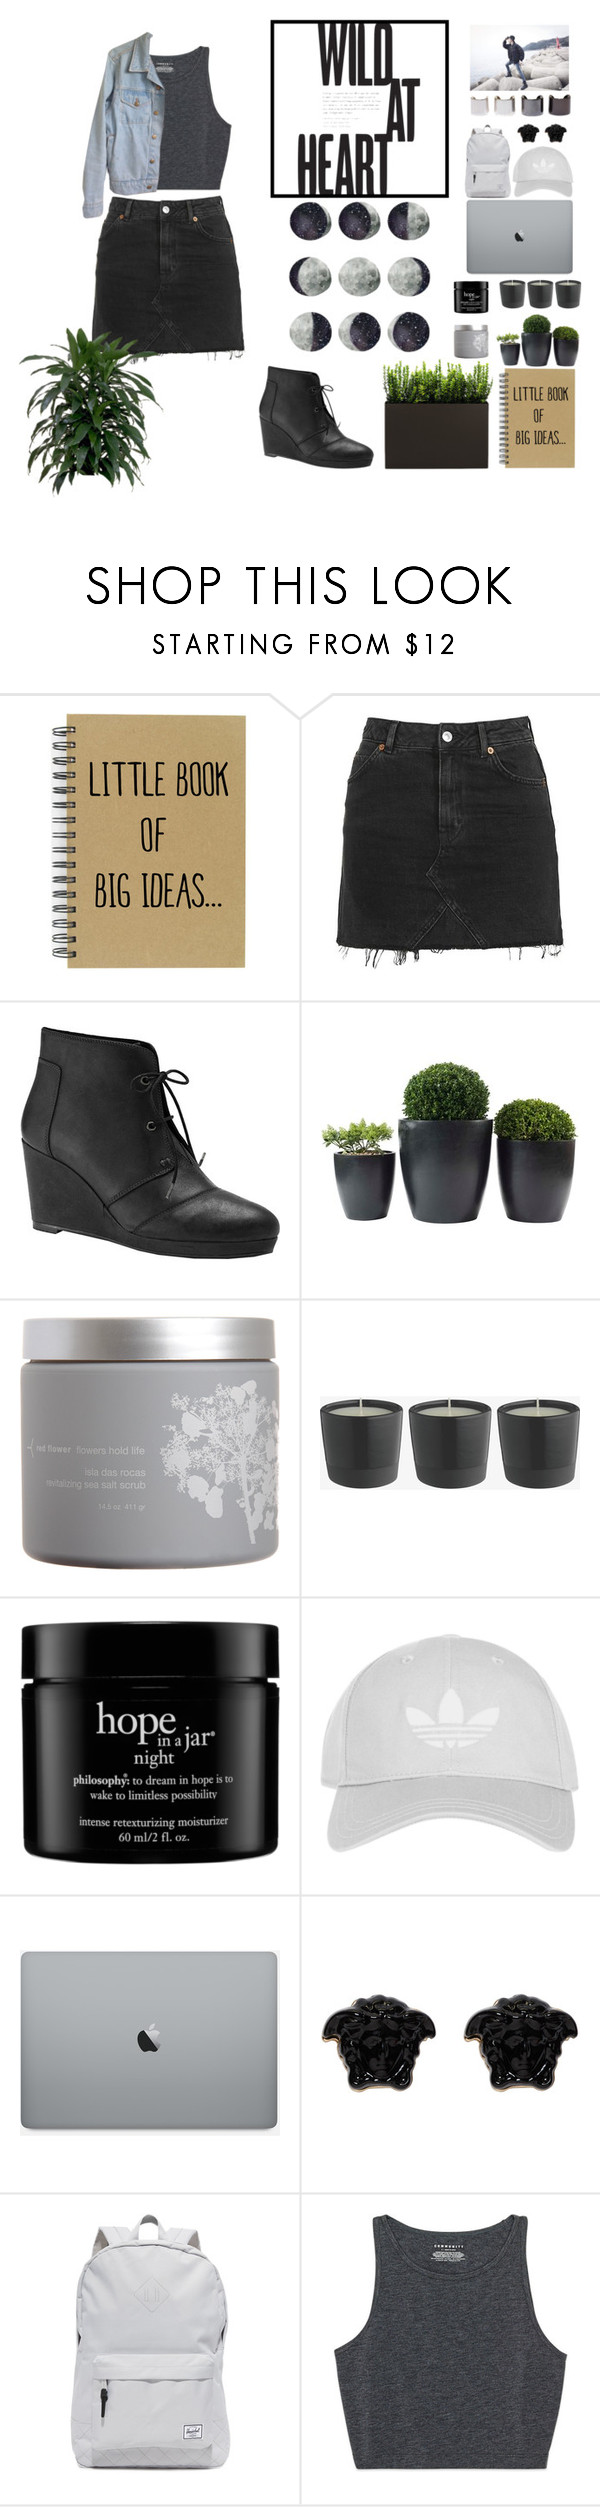 """""""Tears On The Ground"""" by hyunn-a ❤ liked on Polyvore featuring Topshop, Blondo, red flower, philosophy, Versace, Herschel Supply Co., American Apparel and Luv Aj"""